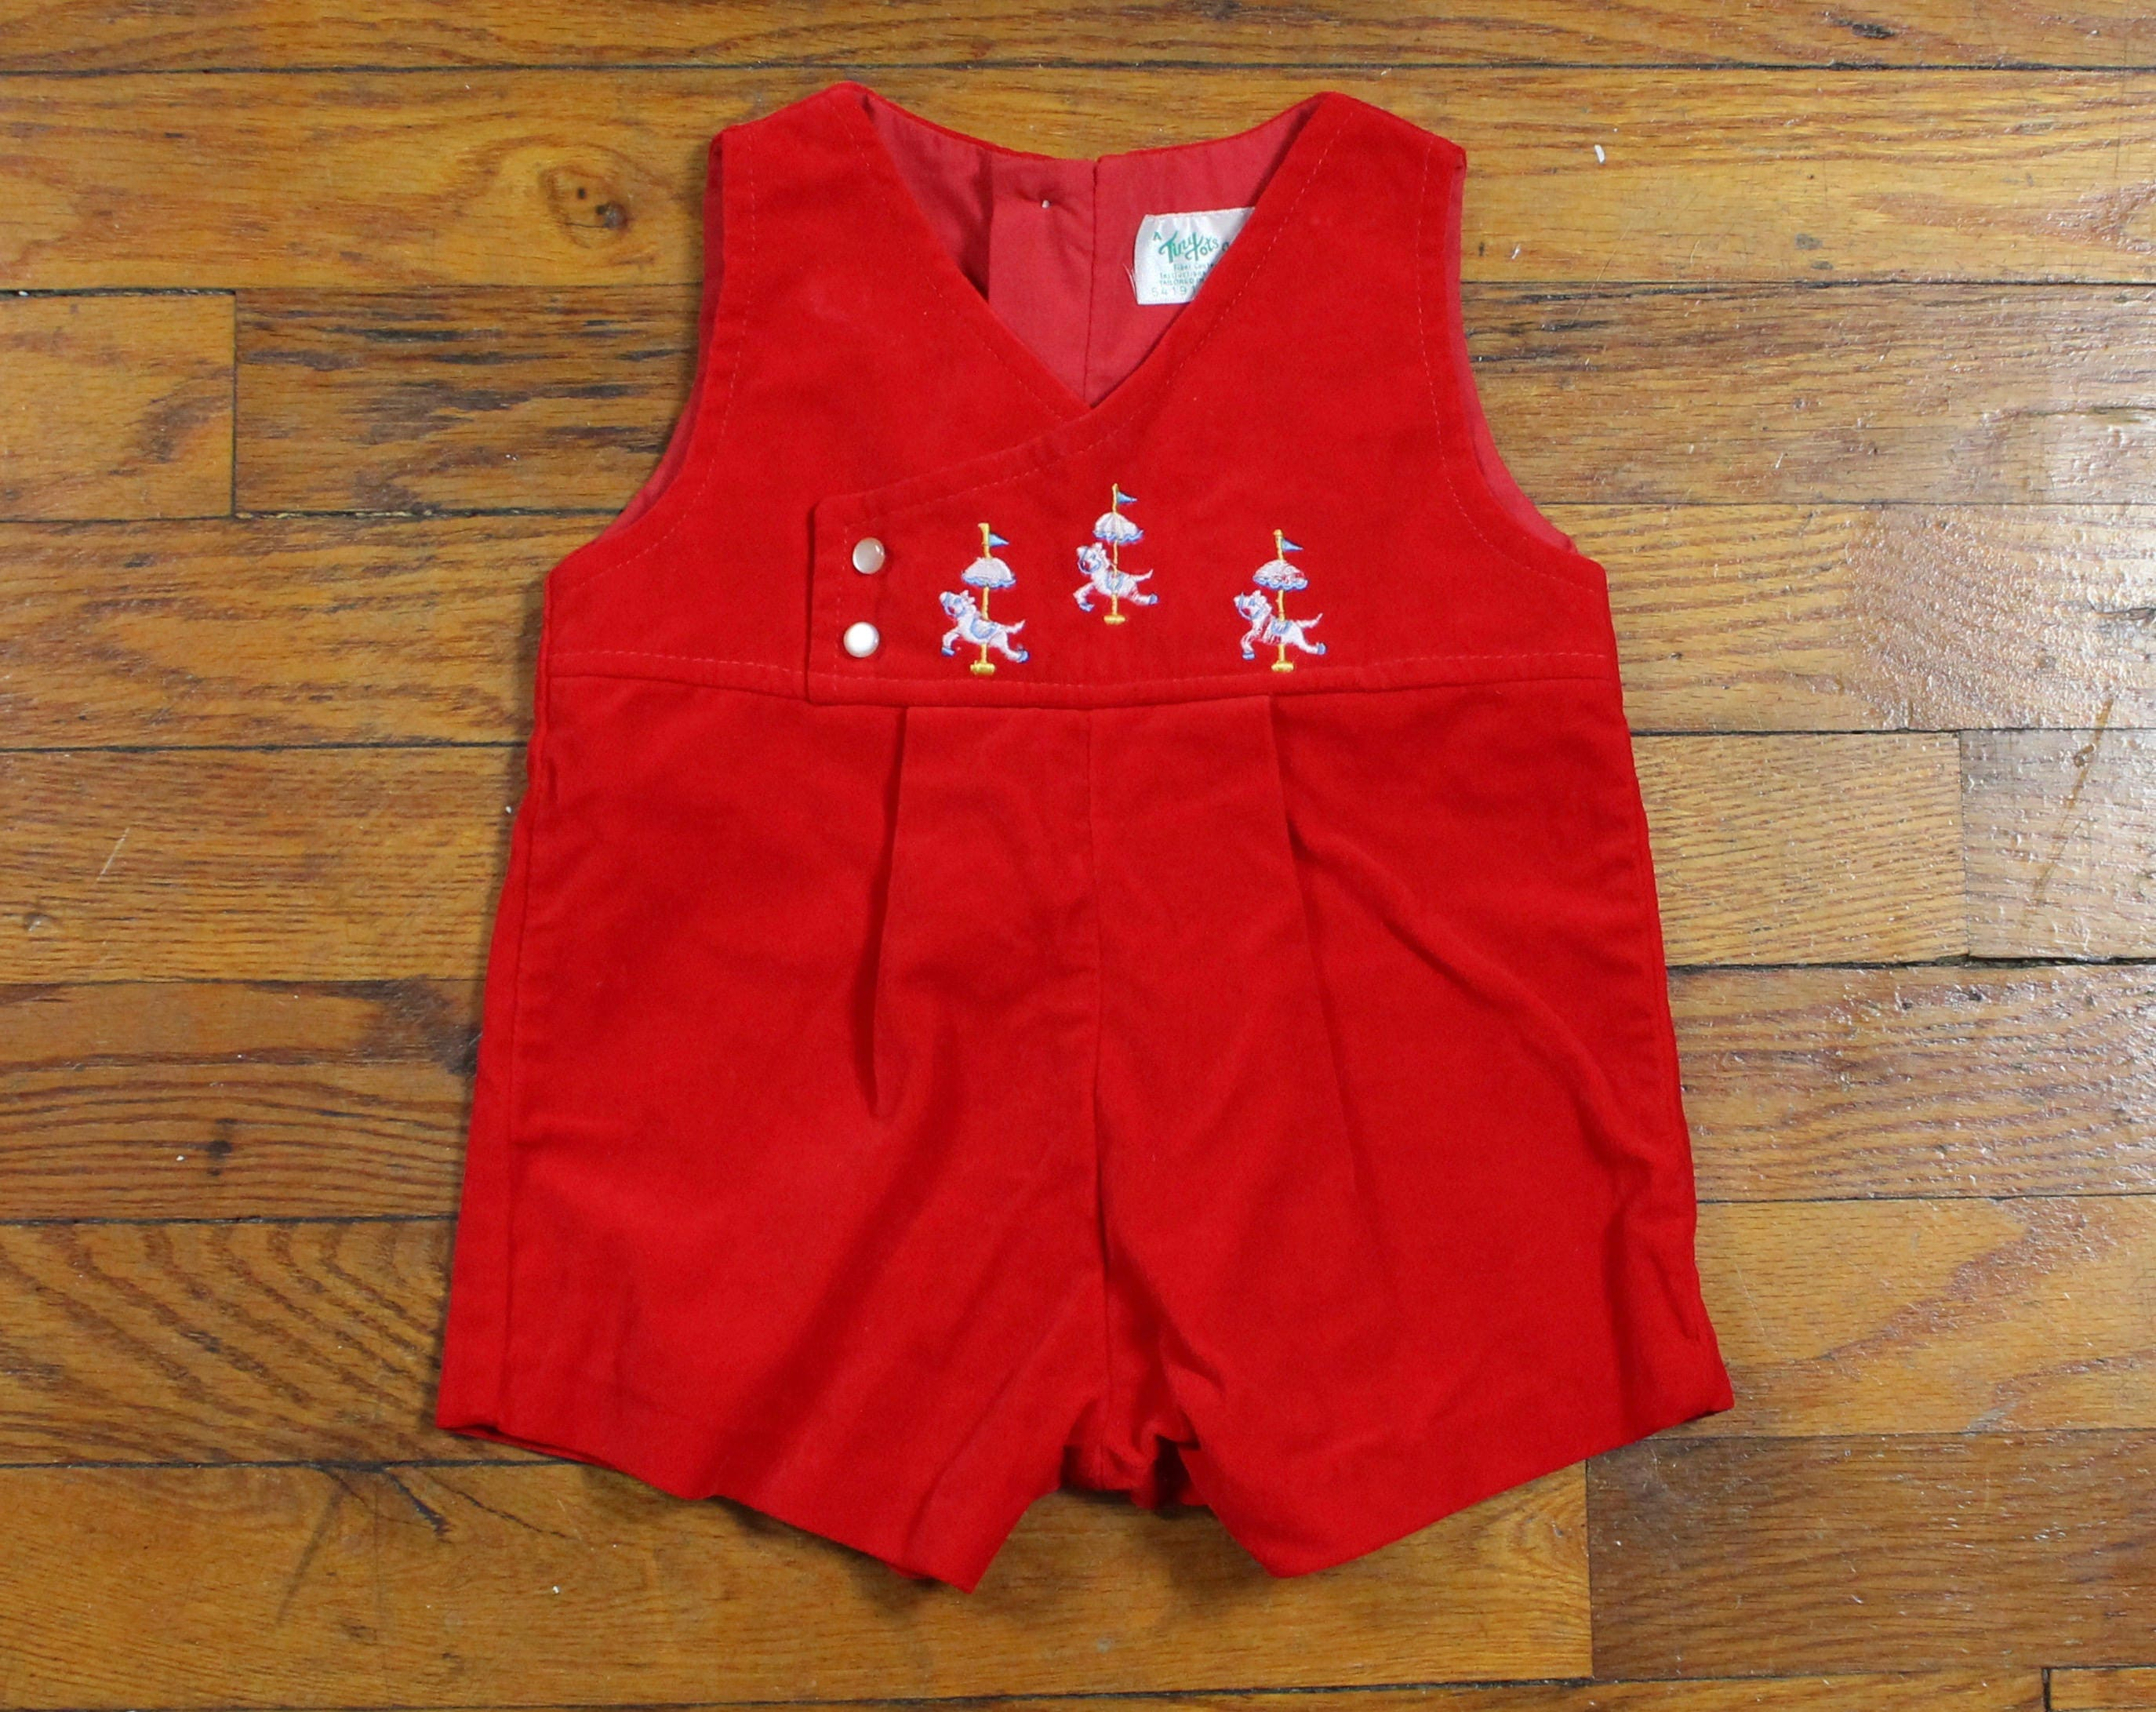 Vintage Baby Boy Jon Jons Brushed Cotton Red Velvet Overalls Baby